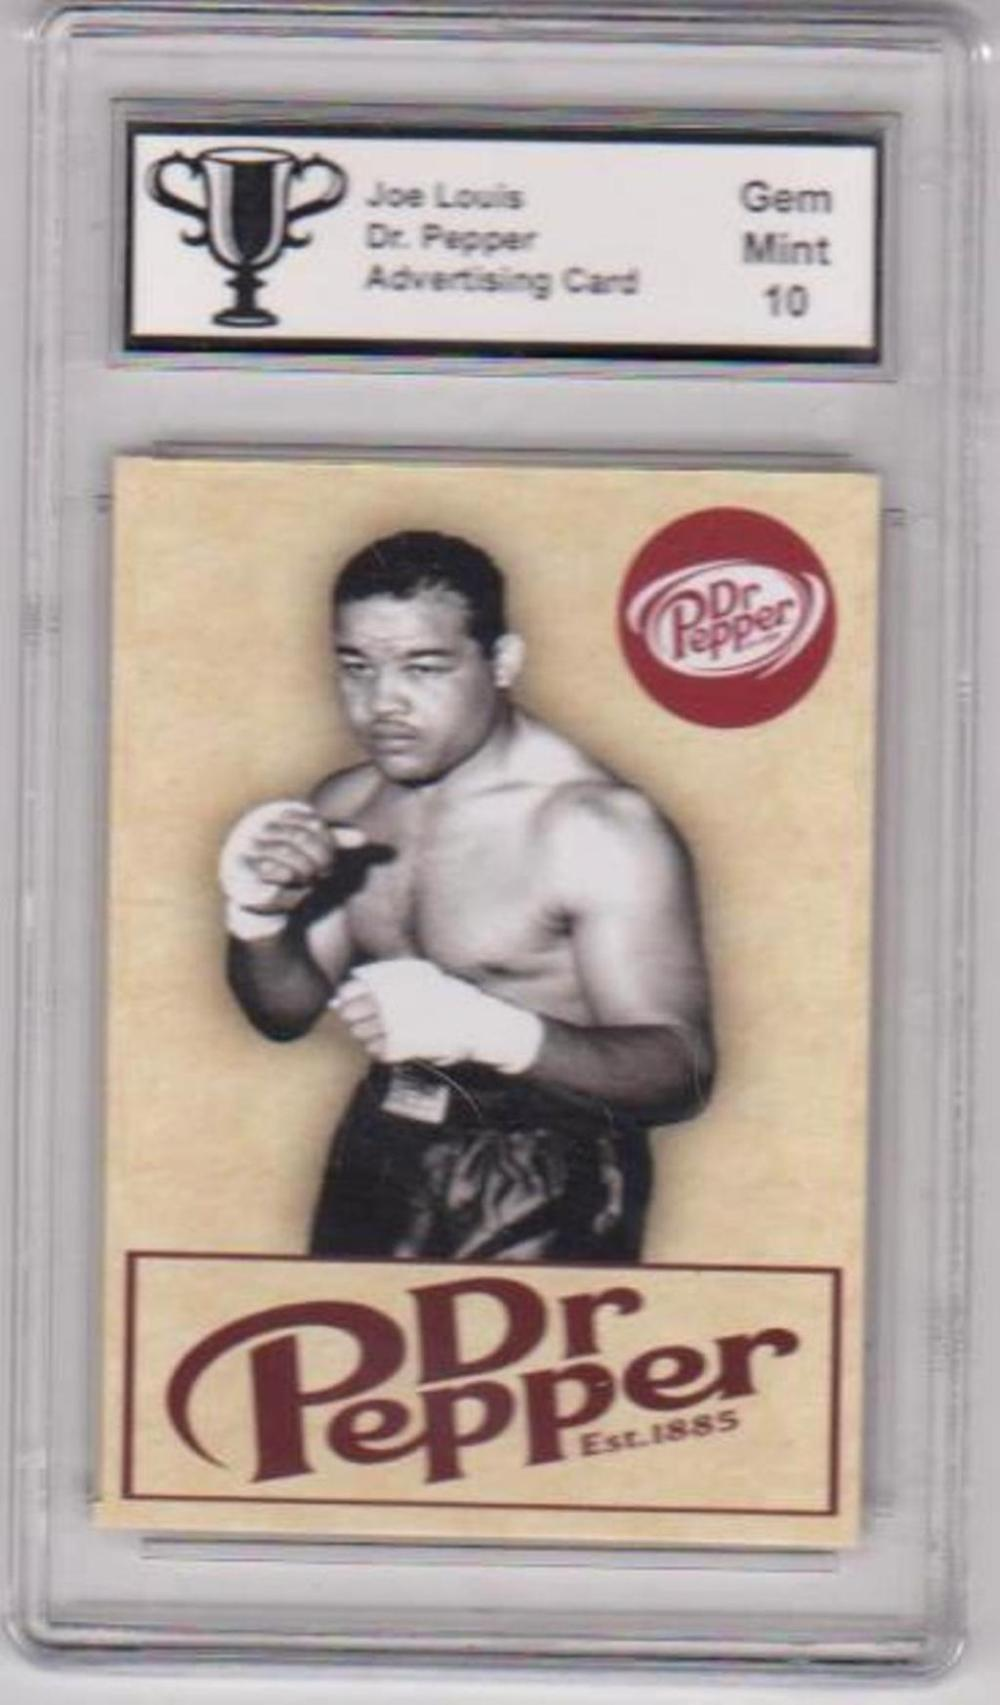 Graded Gem Mint 10 Joe Louis Dr. Pepper Advertising Promo Card